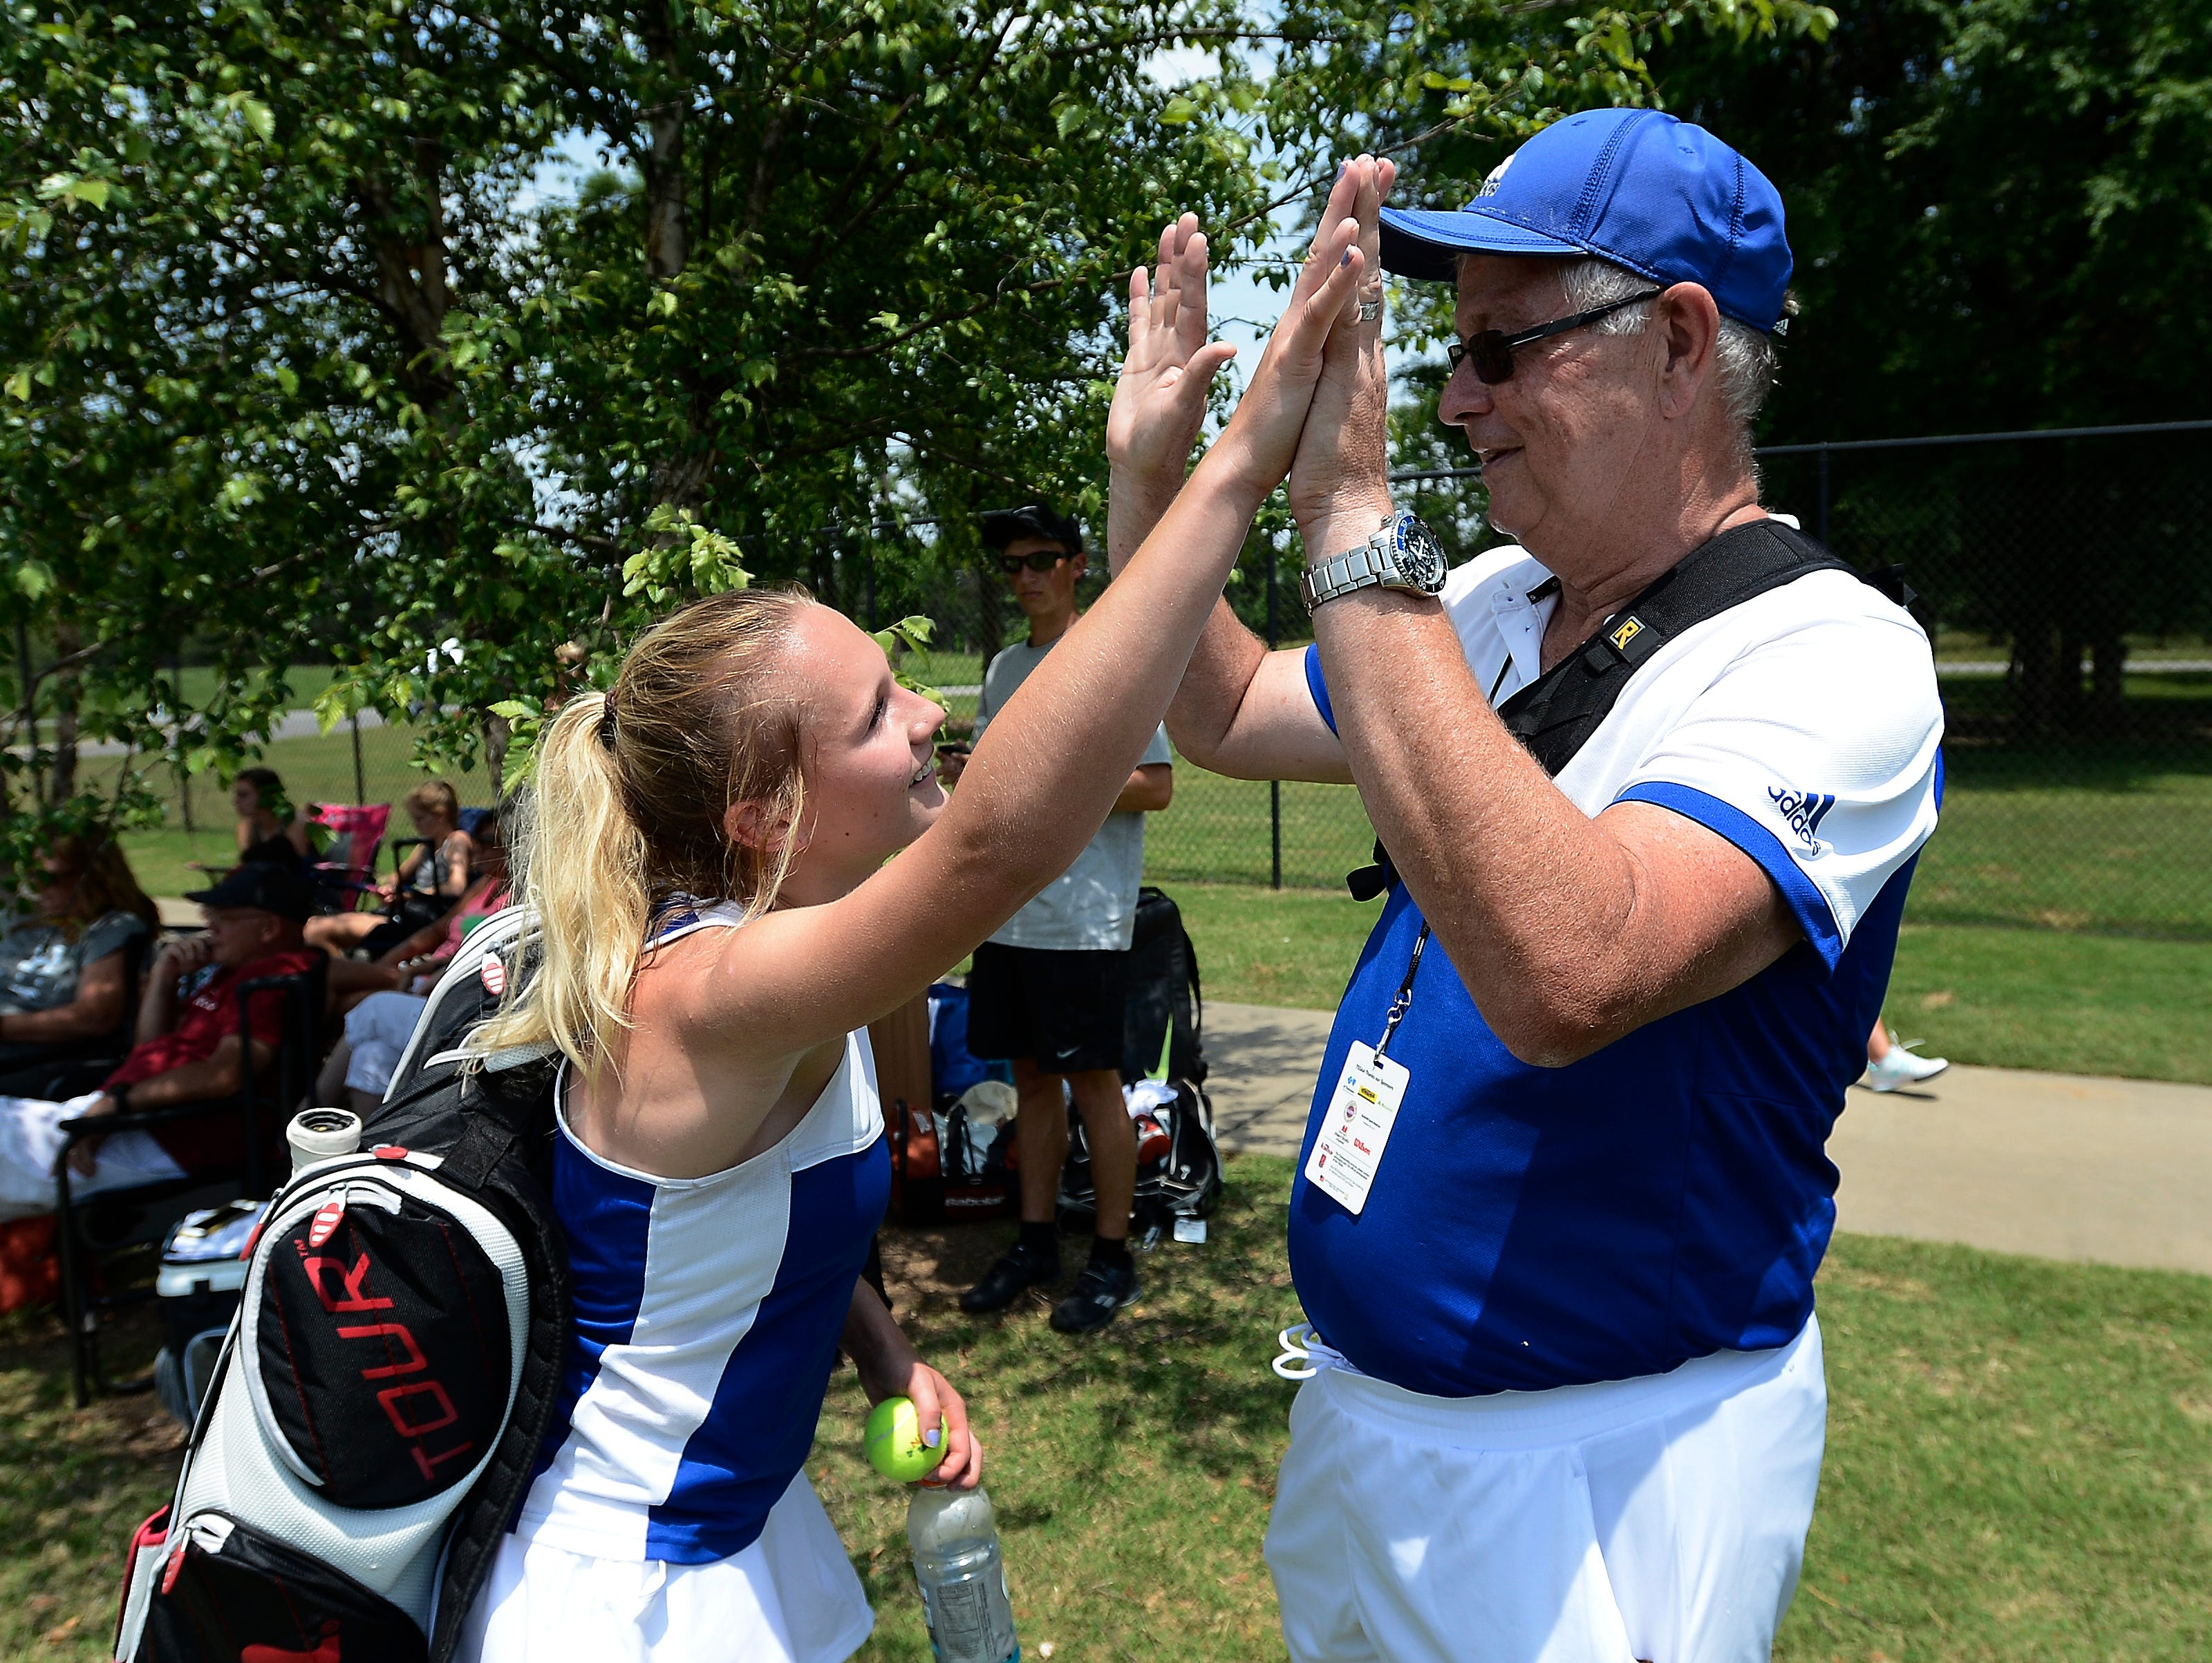 Brentwood High School player Nikki Christiansen celebrates with head coach Bill Jayne after she won her match against Houston High School during the Tennessee Class AAA girls team tennis championship final Wednesday, May 25, 2016, in Murfreesboro, Tenn.